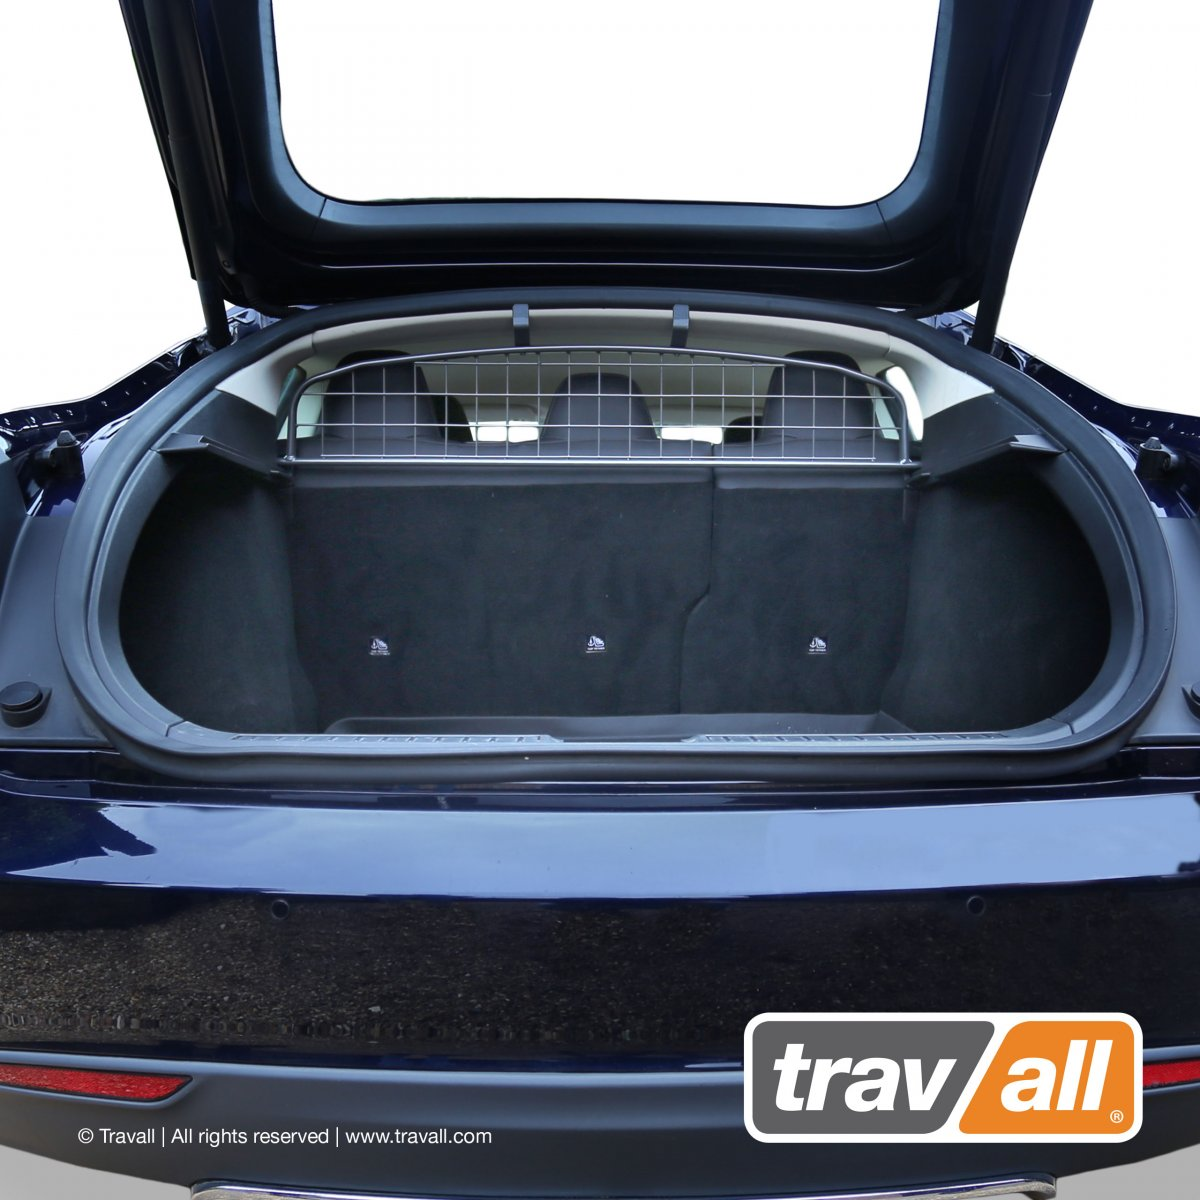 Travall®GUARD per Tesla Model S (2012 >)